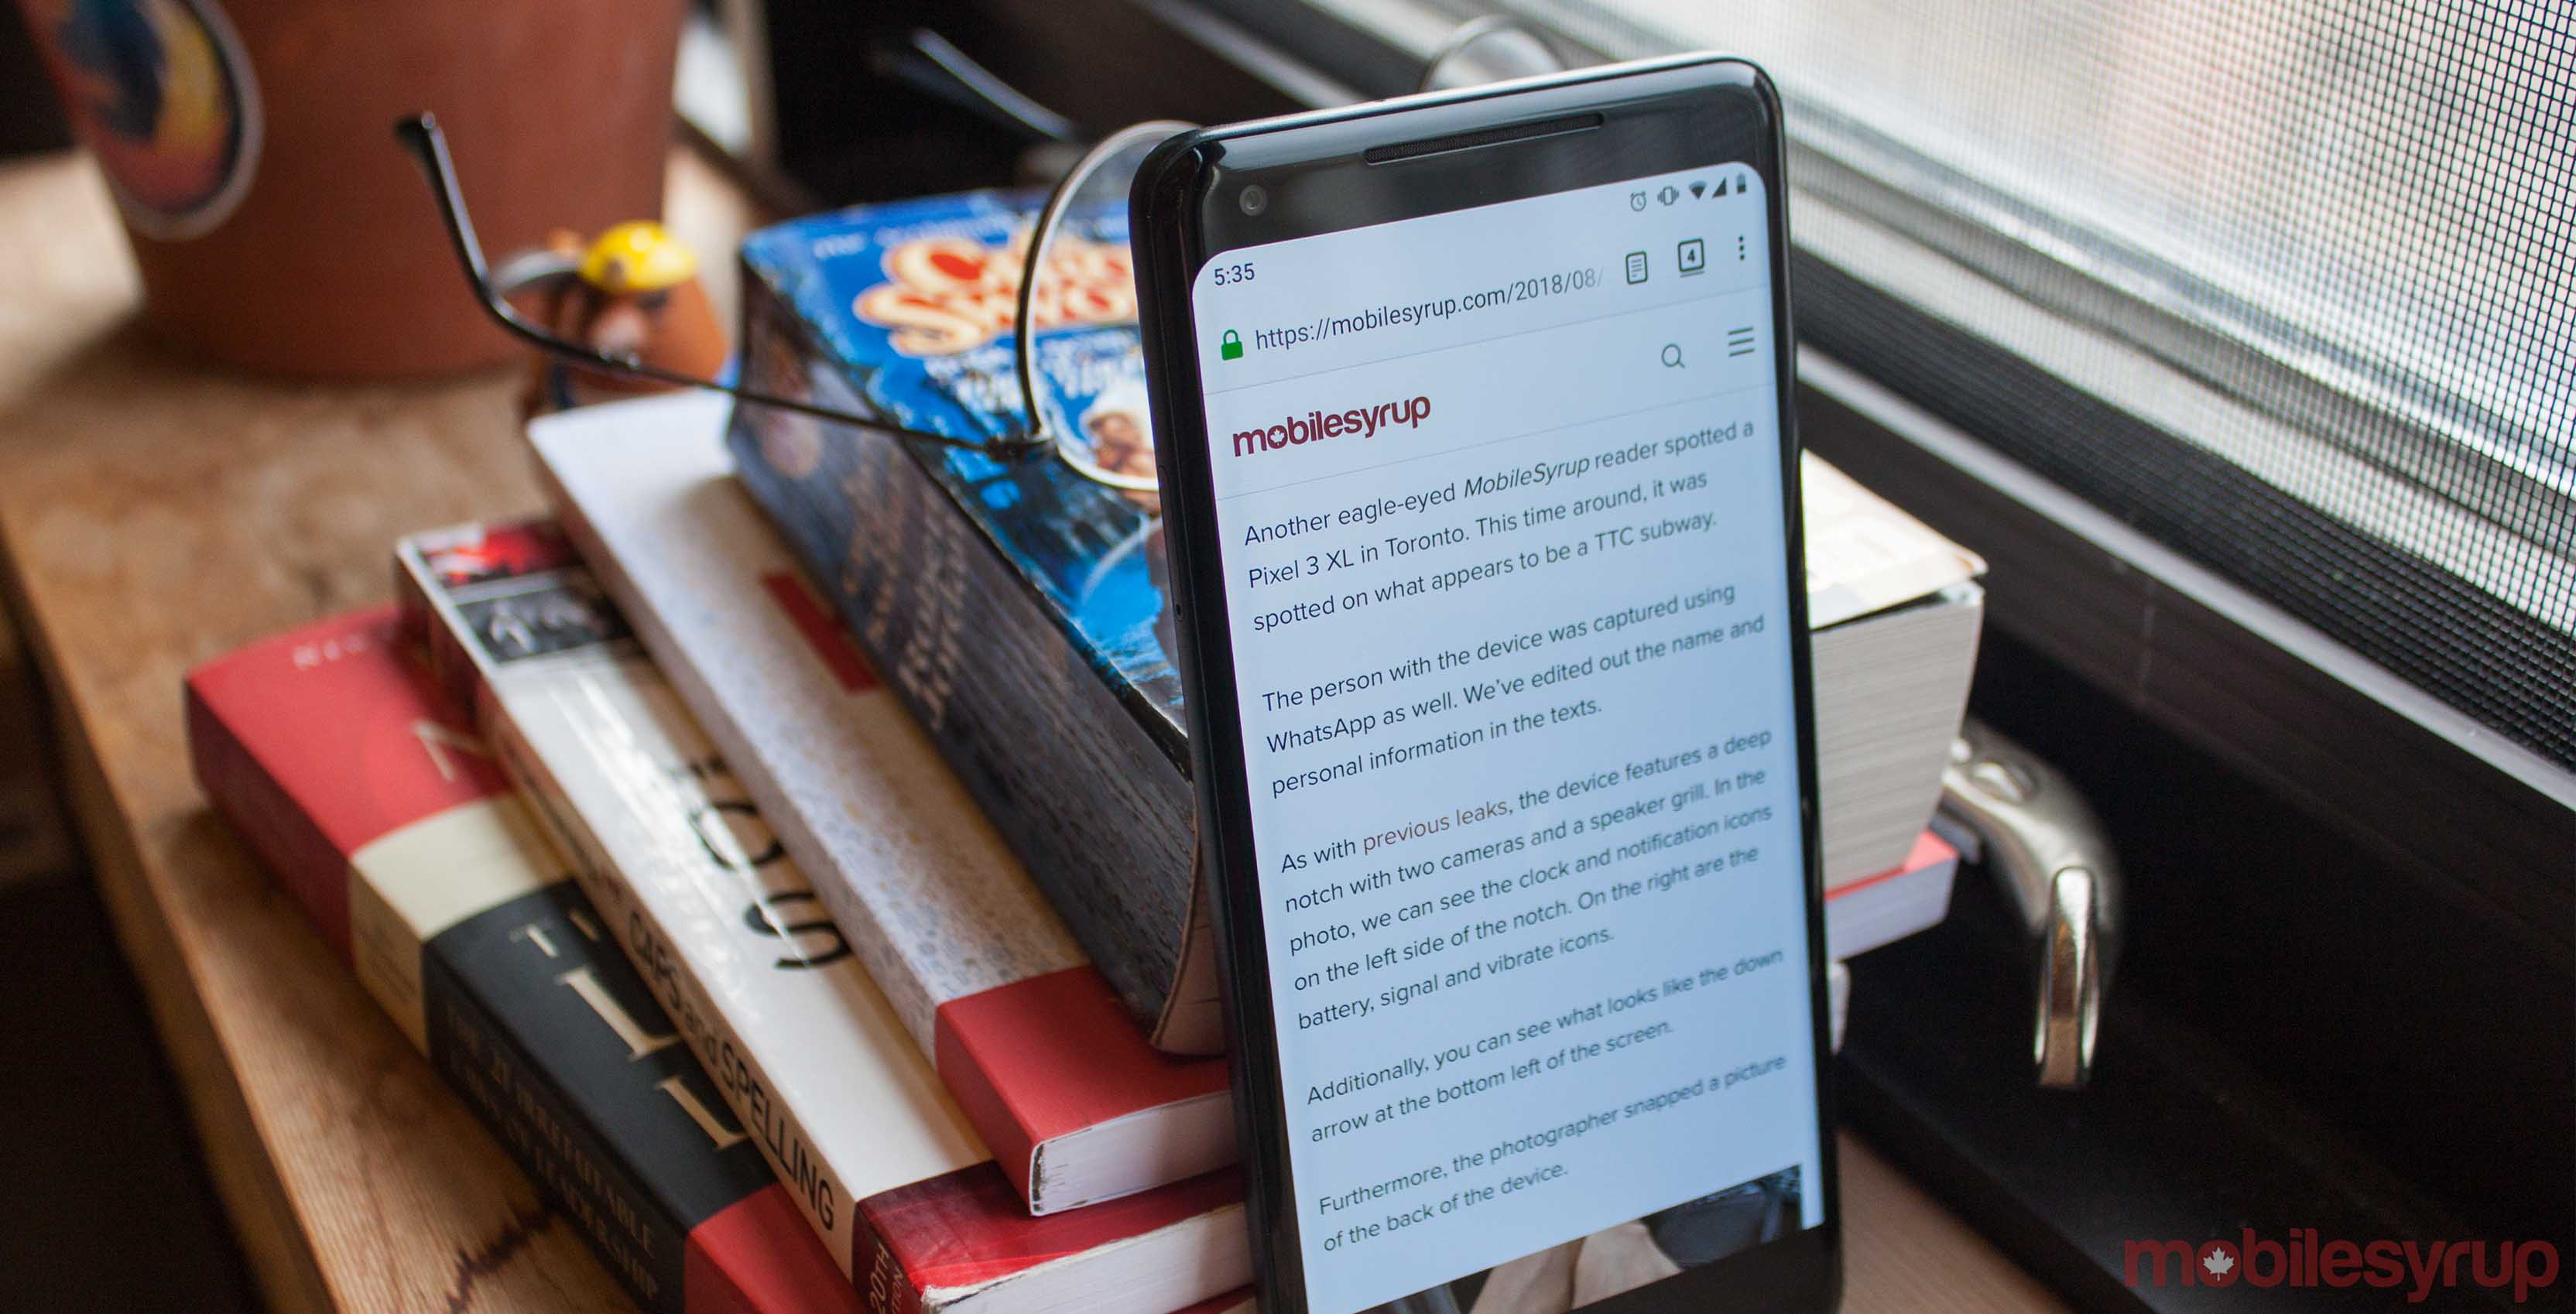 Pixel 2XL leaning against books